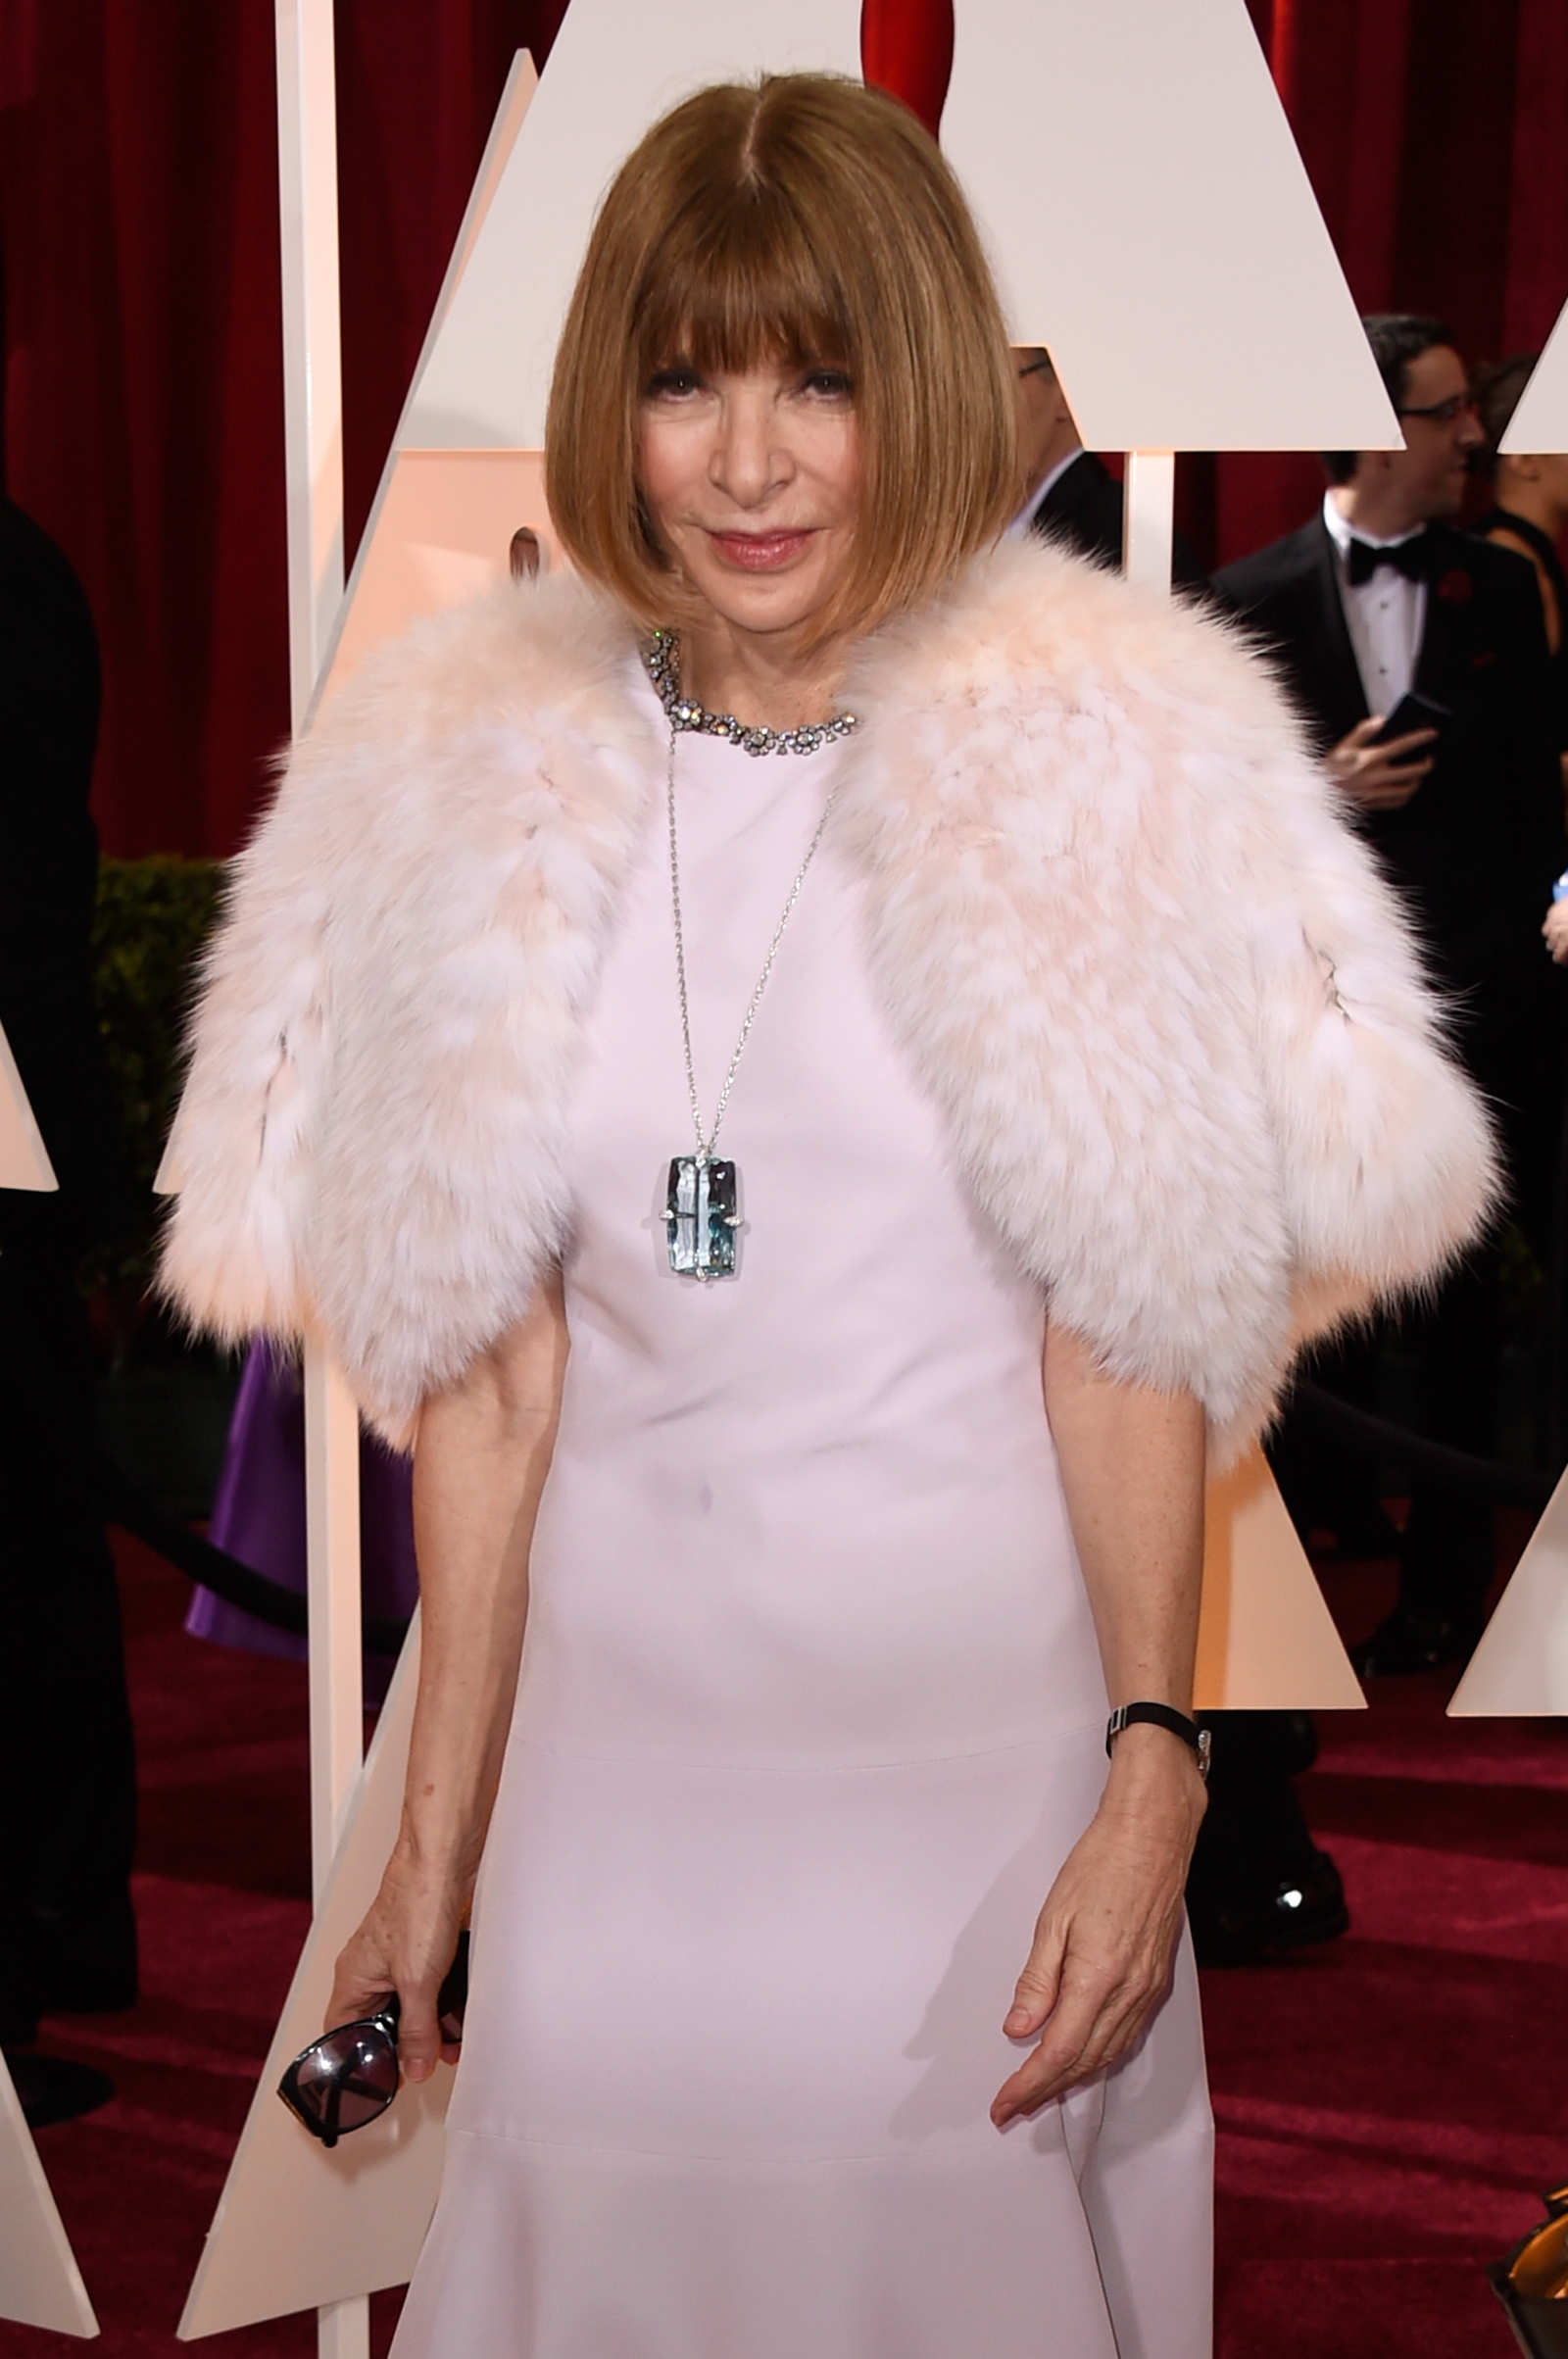 Oscars 2015 Anna Wintour Slammed As Diva For Refusing